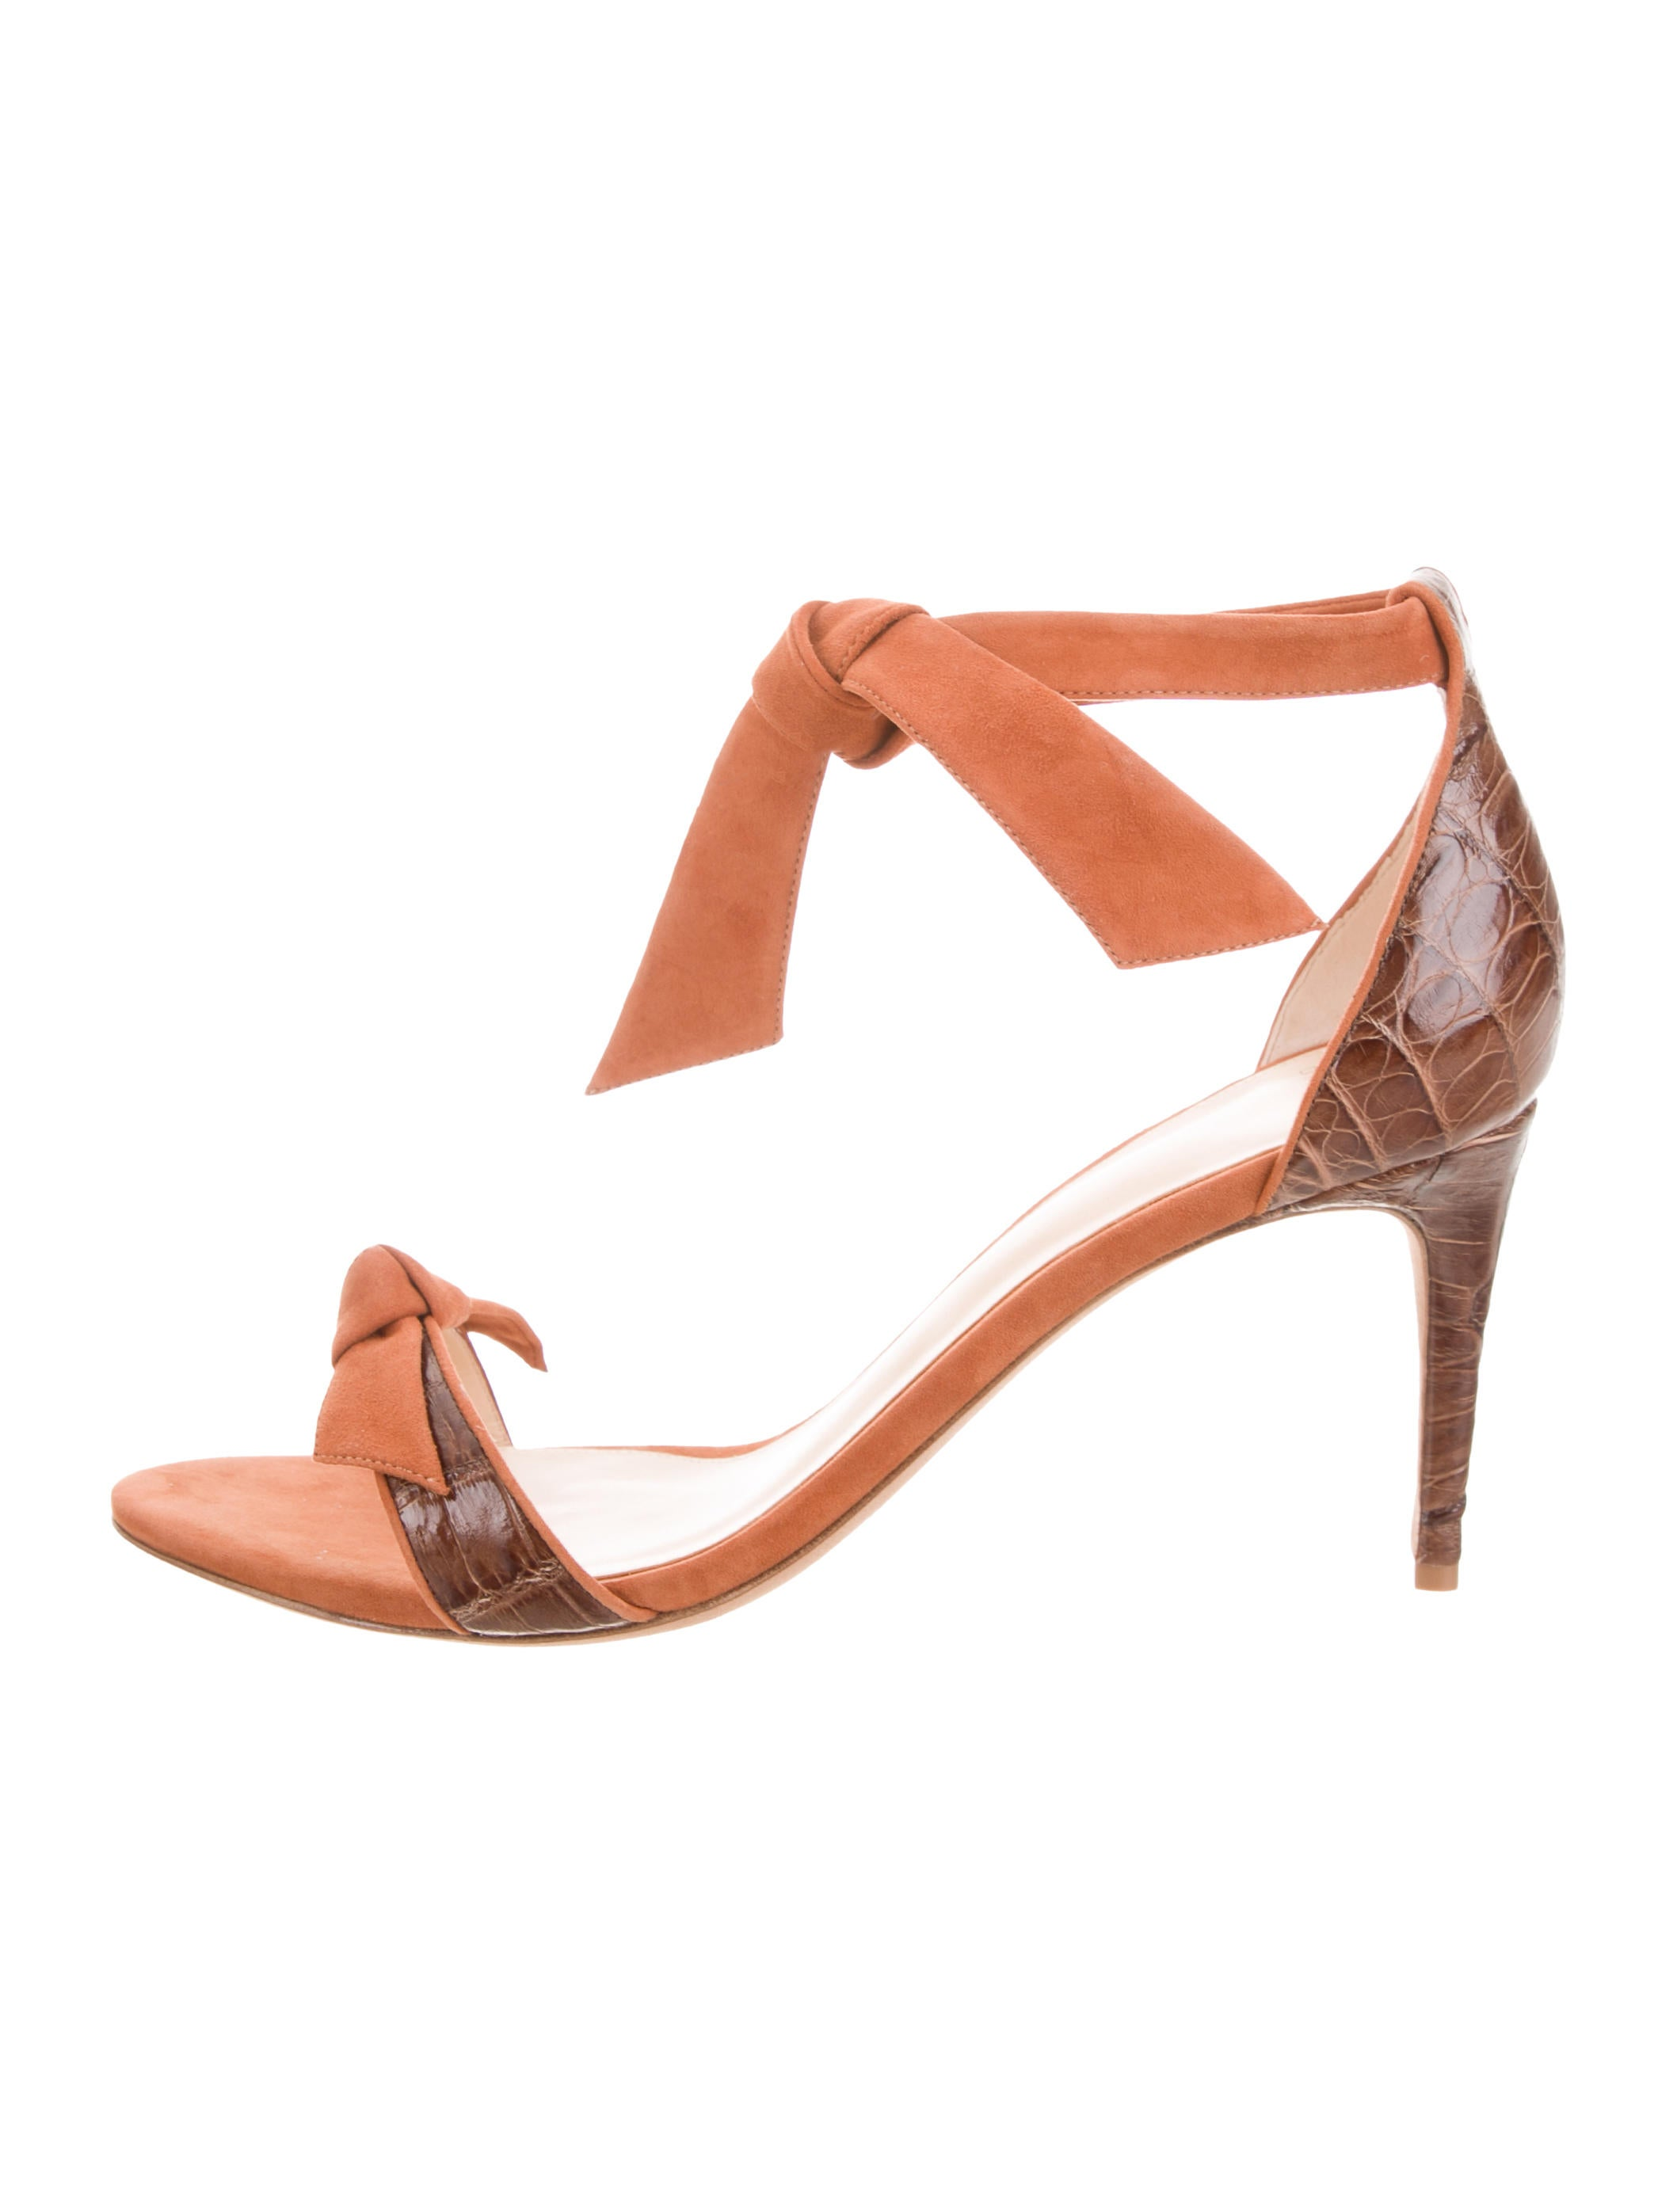 cheap price store Alexandre Birman Alligator-Trimmed Wrap-Around Sandals sale new arrival clearance popular cheap sale wide range of geniue stockist for sale Pye5X